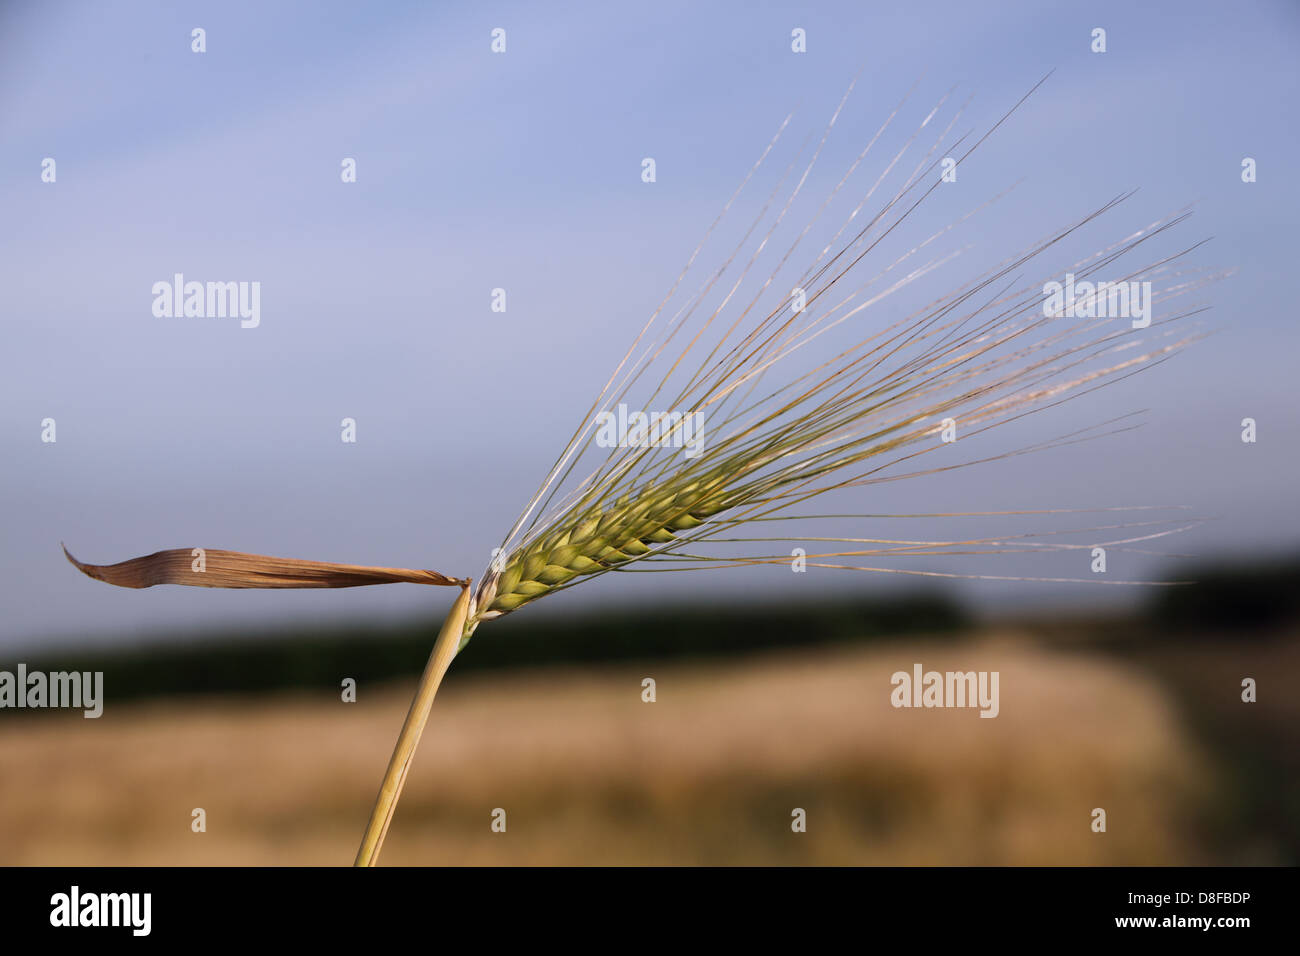 Ear of wheat in a field England UK Stock Photo